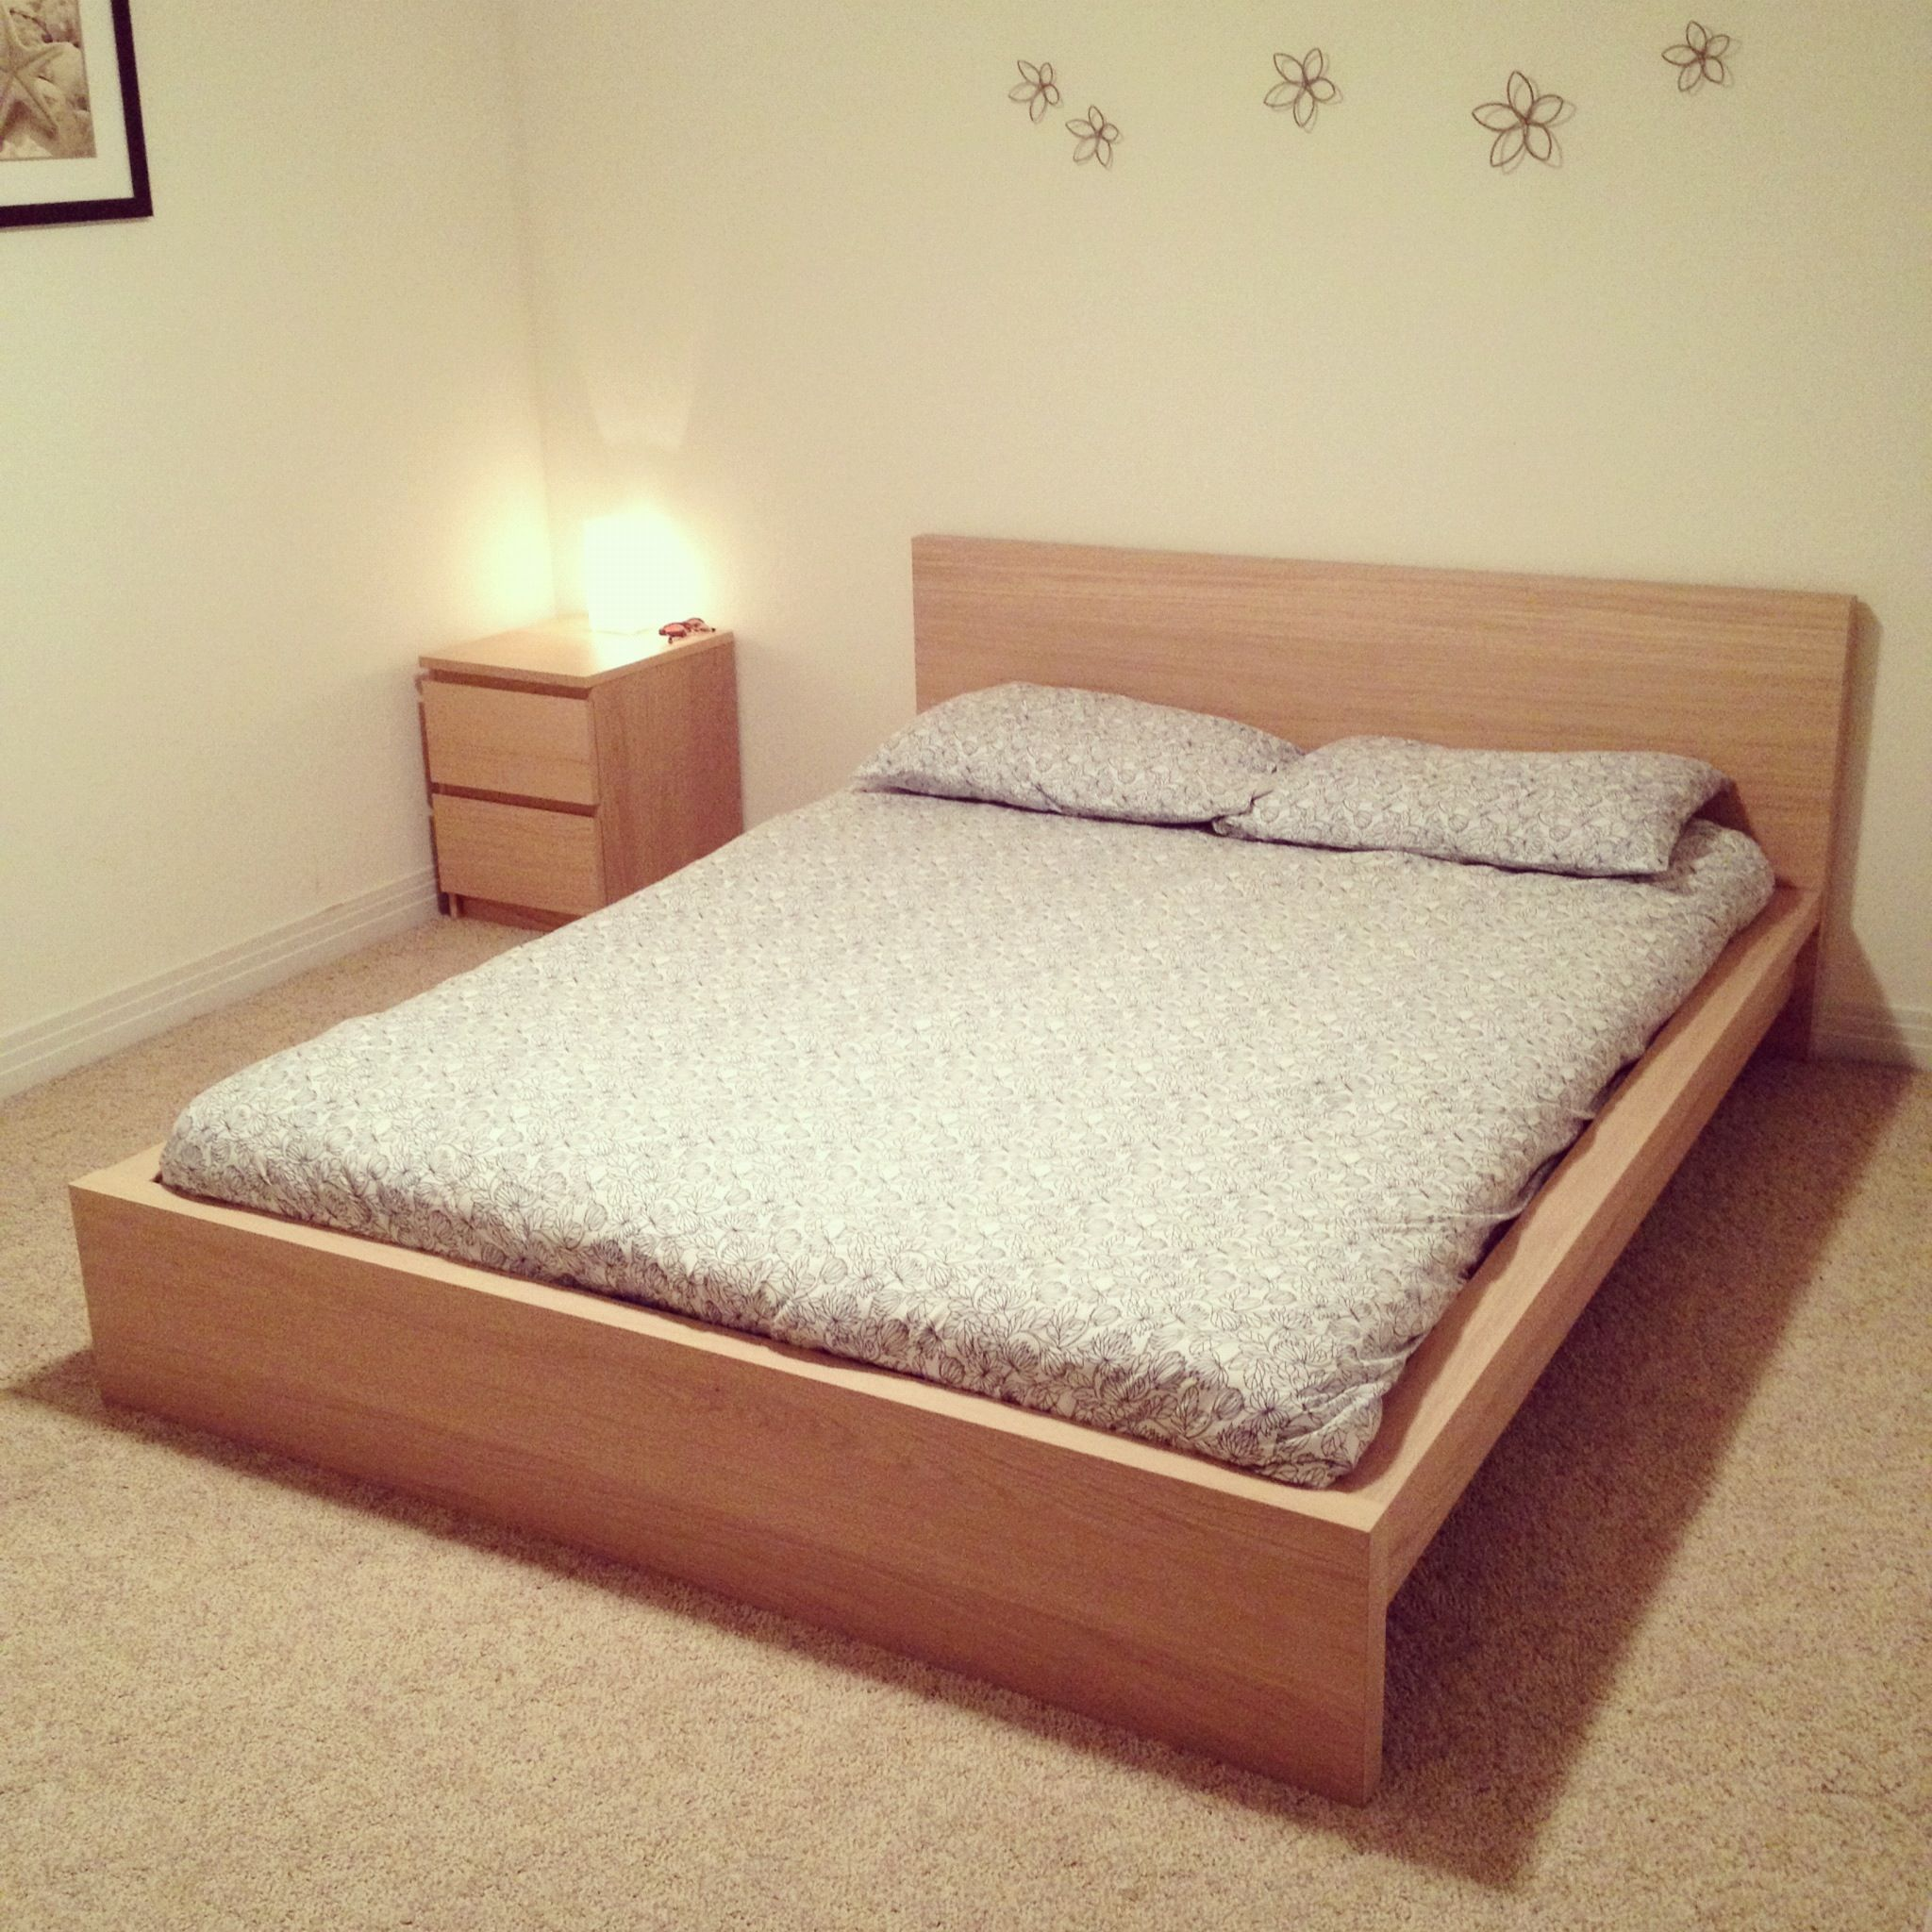 ikea malm bed with side dresser | For the Home | Pinterest | Ikea ...